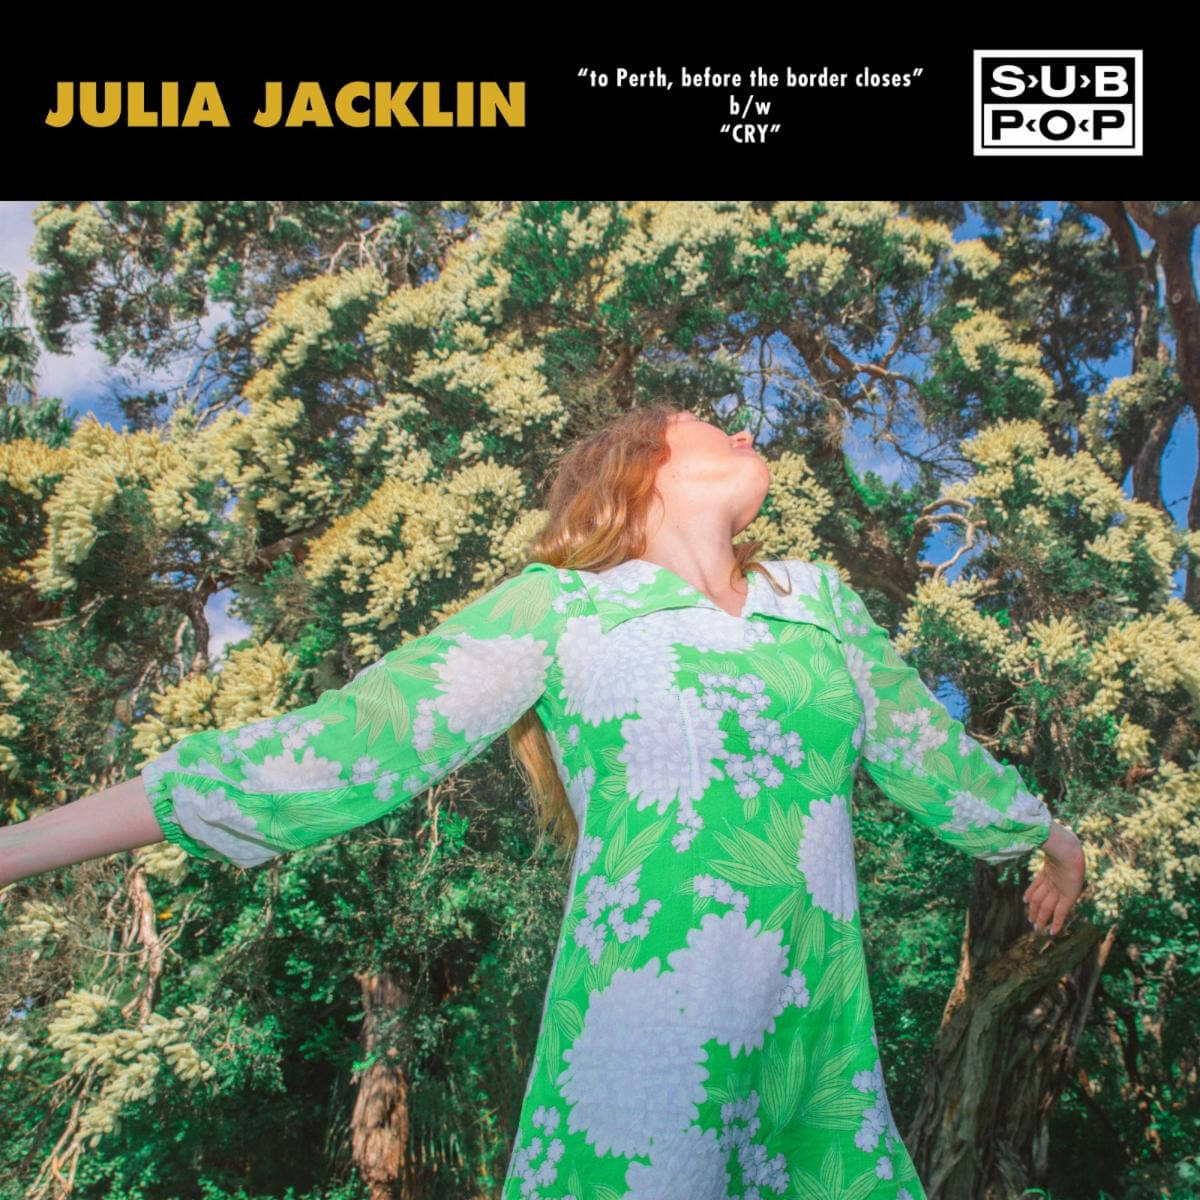 """Jacklin has released the New Singles """"to Perth, before the border closes"""" and """"Cry"""" For Sub Pop Singles Club"""